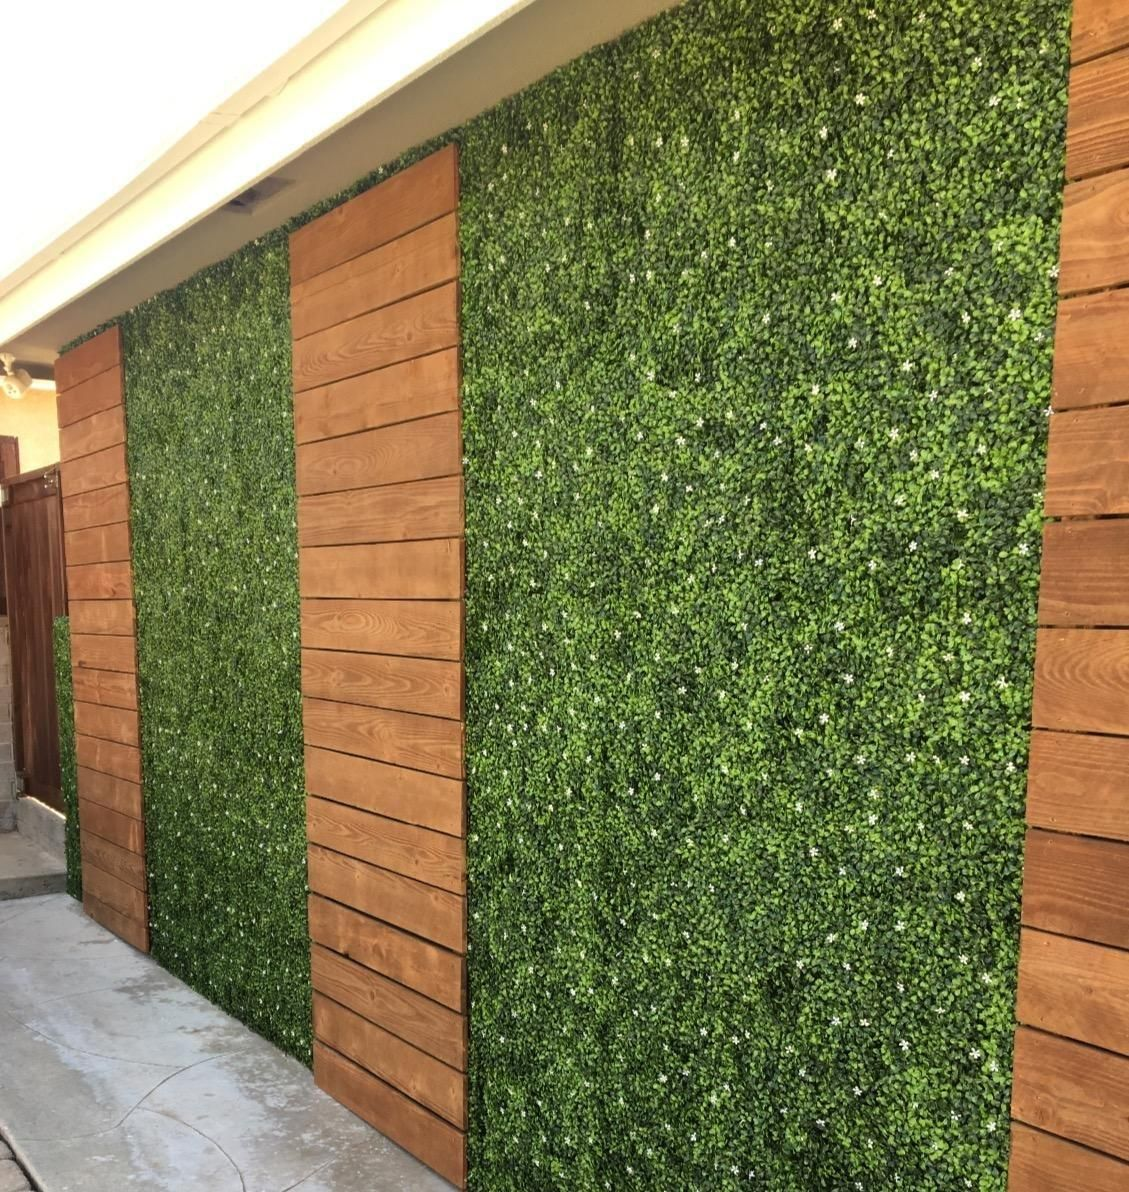 2019 Artificial Plant Wall Hedge Lawn Boxwood Hedge Artificial Lawn Garden Backyard Home Decor S…   Garden wall decor, Outdoor gardens design, Artificial plant wall